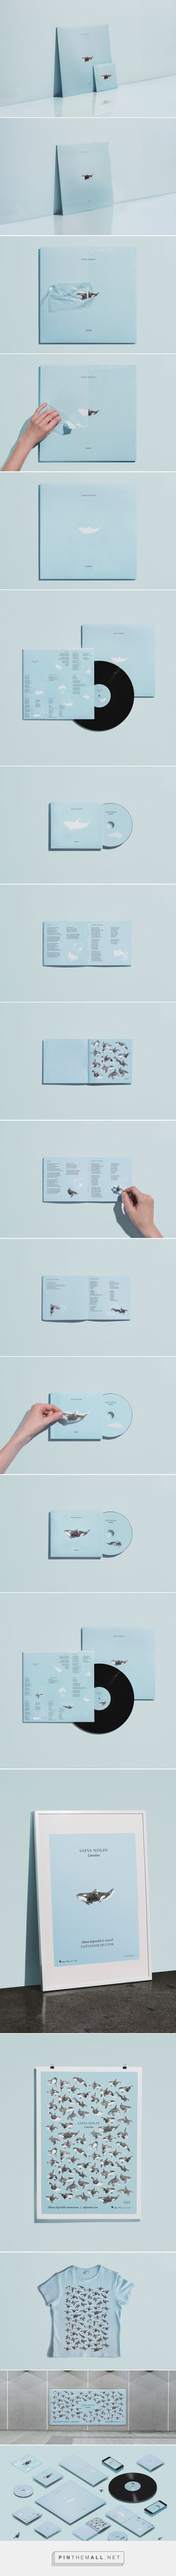 Safia Nolin, Limoilou. CD and Vinyl Packaging on Behance... - a grouped images picture